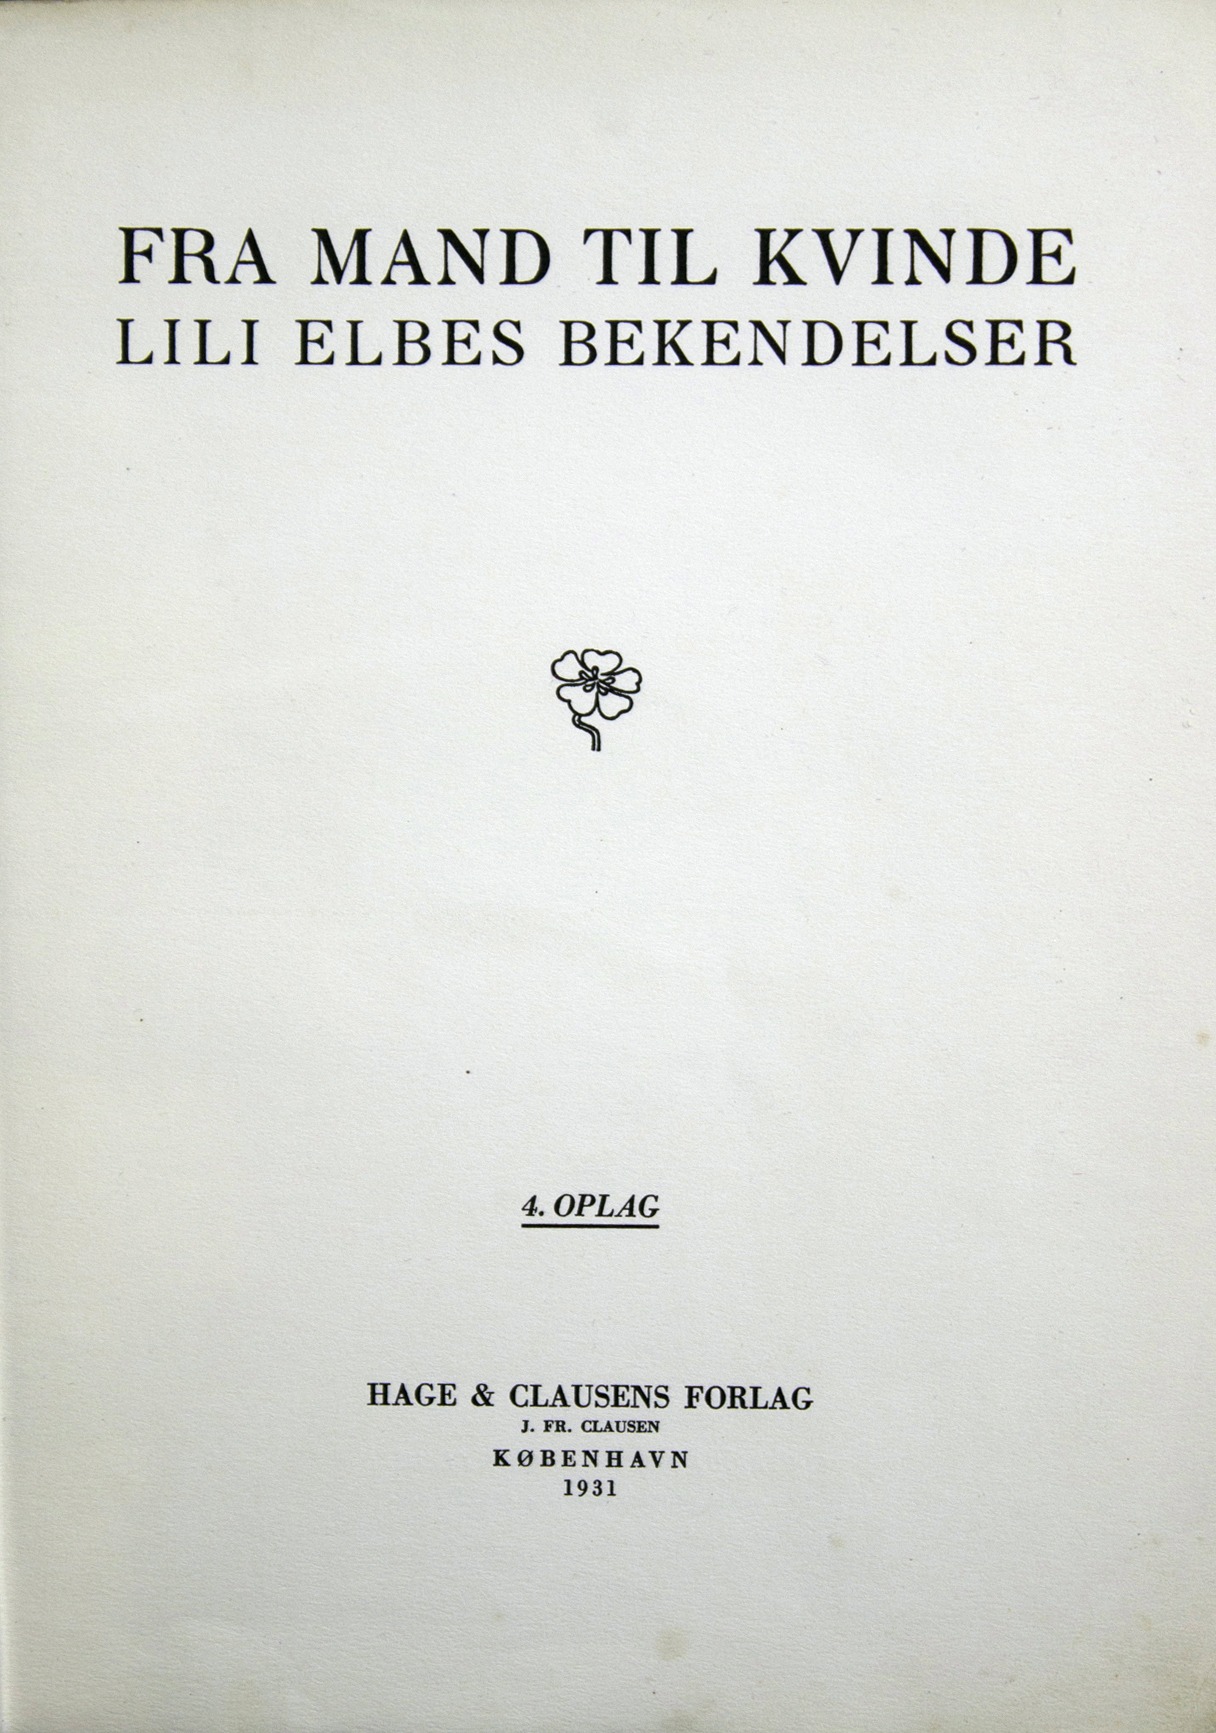 Title page from Fra Mand til Kvinde, omitting any identifying information about the author.